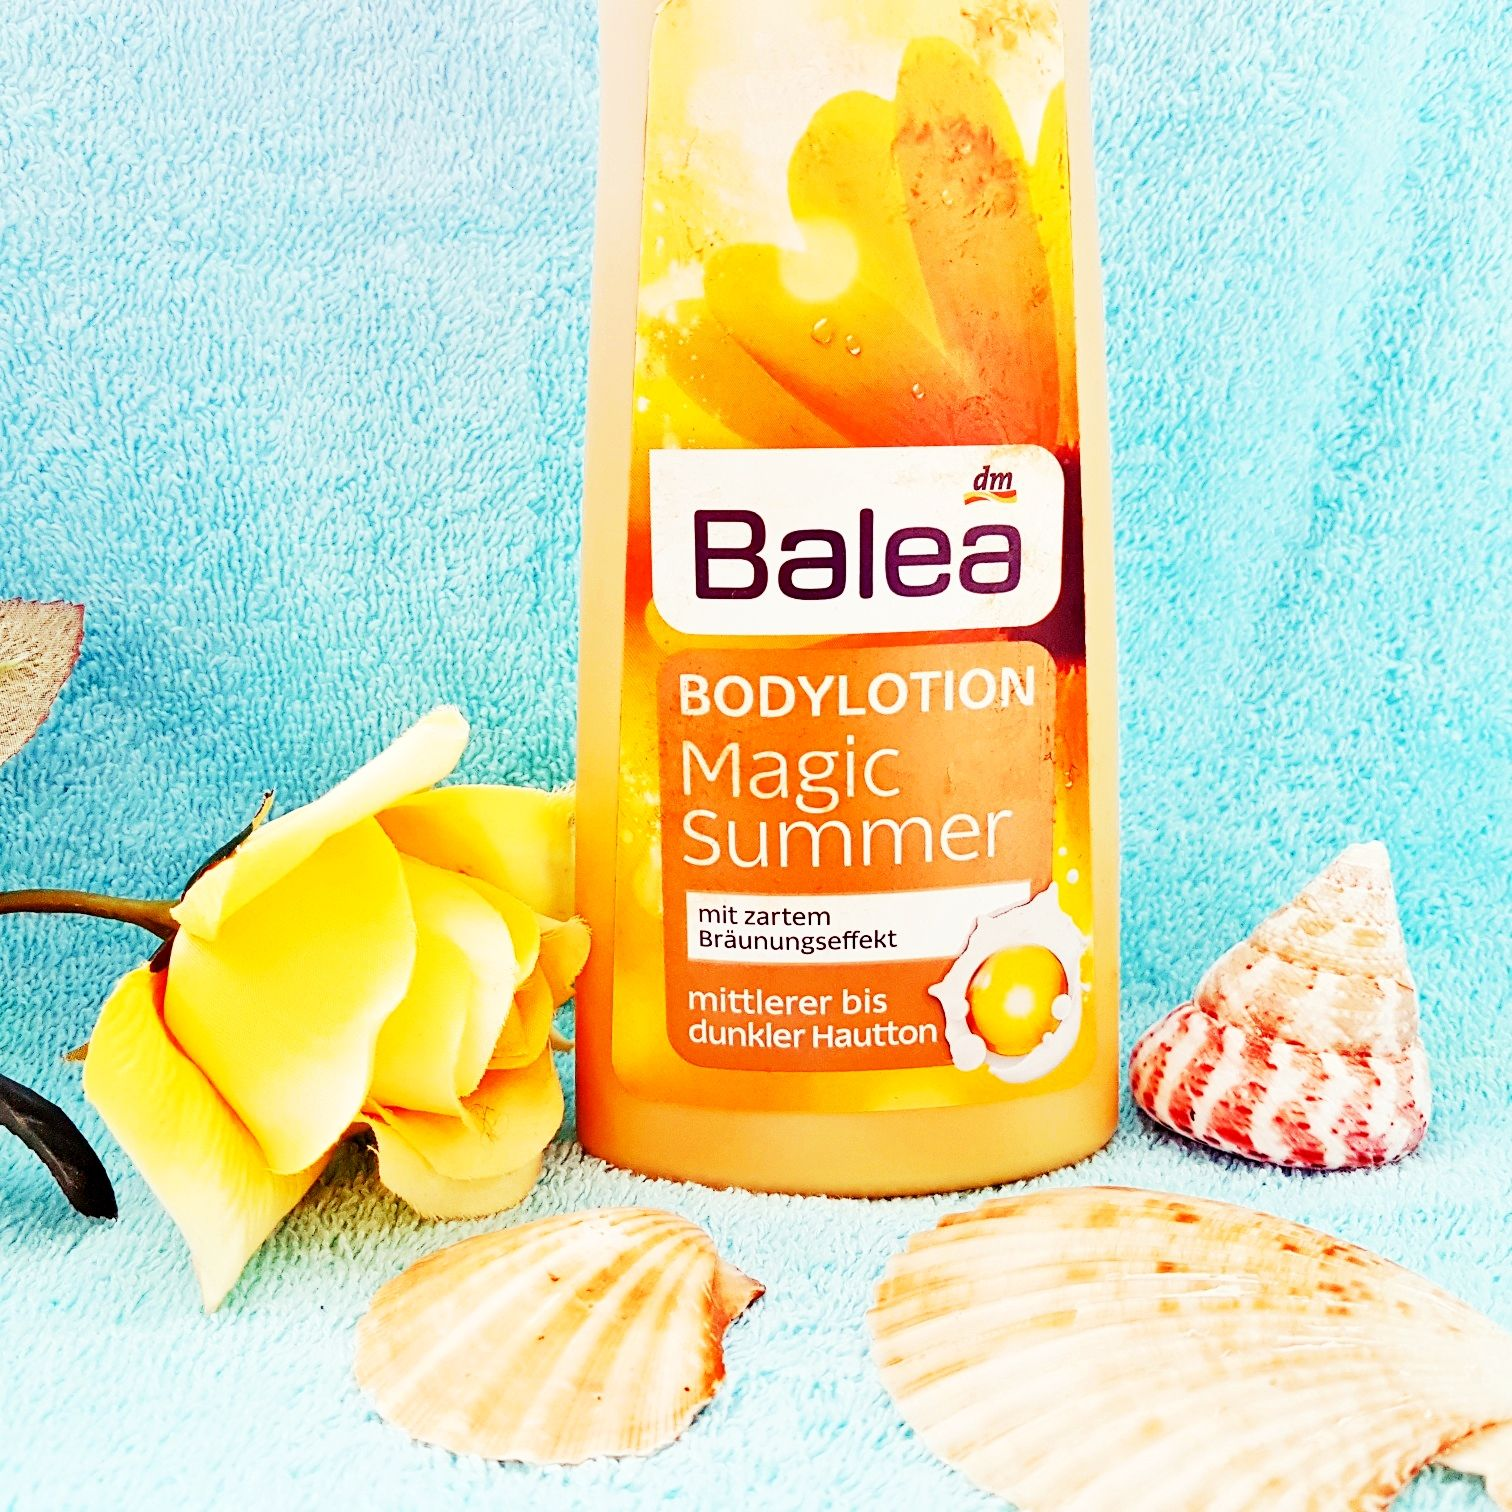 Balea Bodylotion Magic Summer